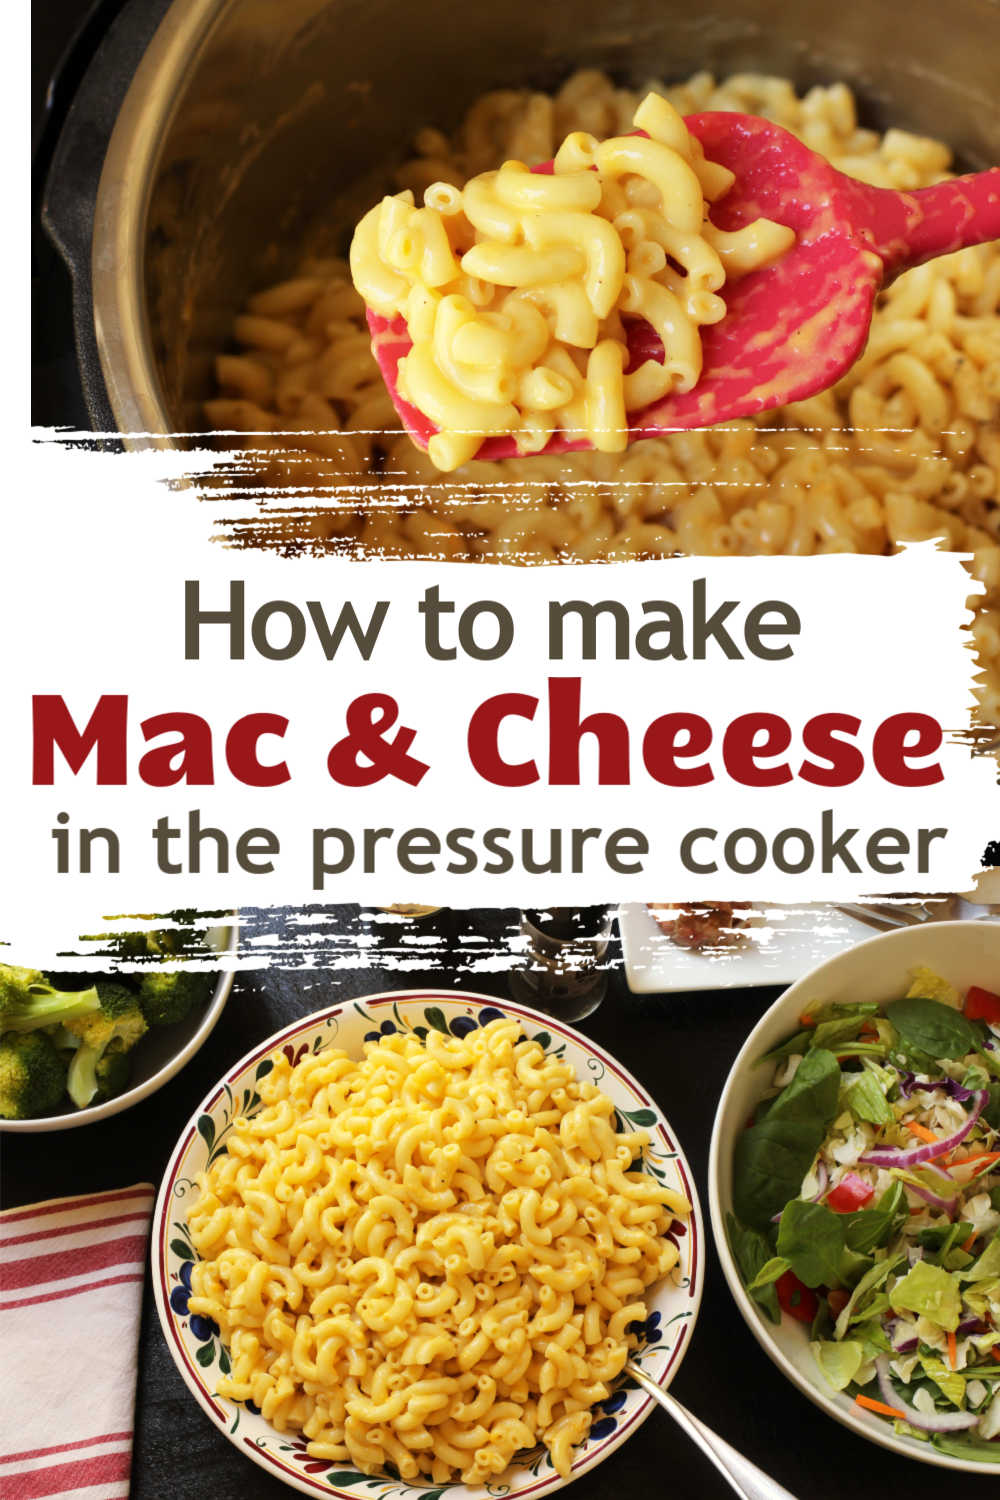 instant pot of mac and cheese next to serving bowl of mac and cheese